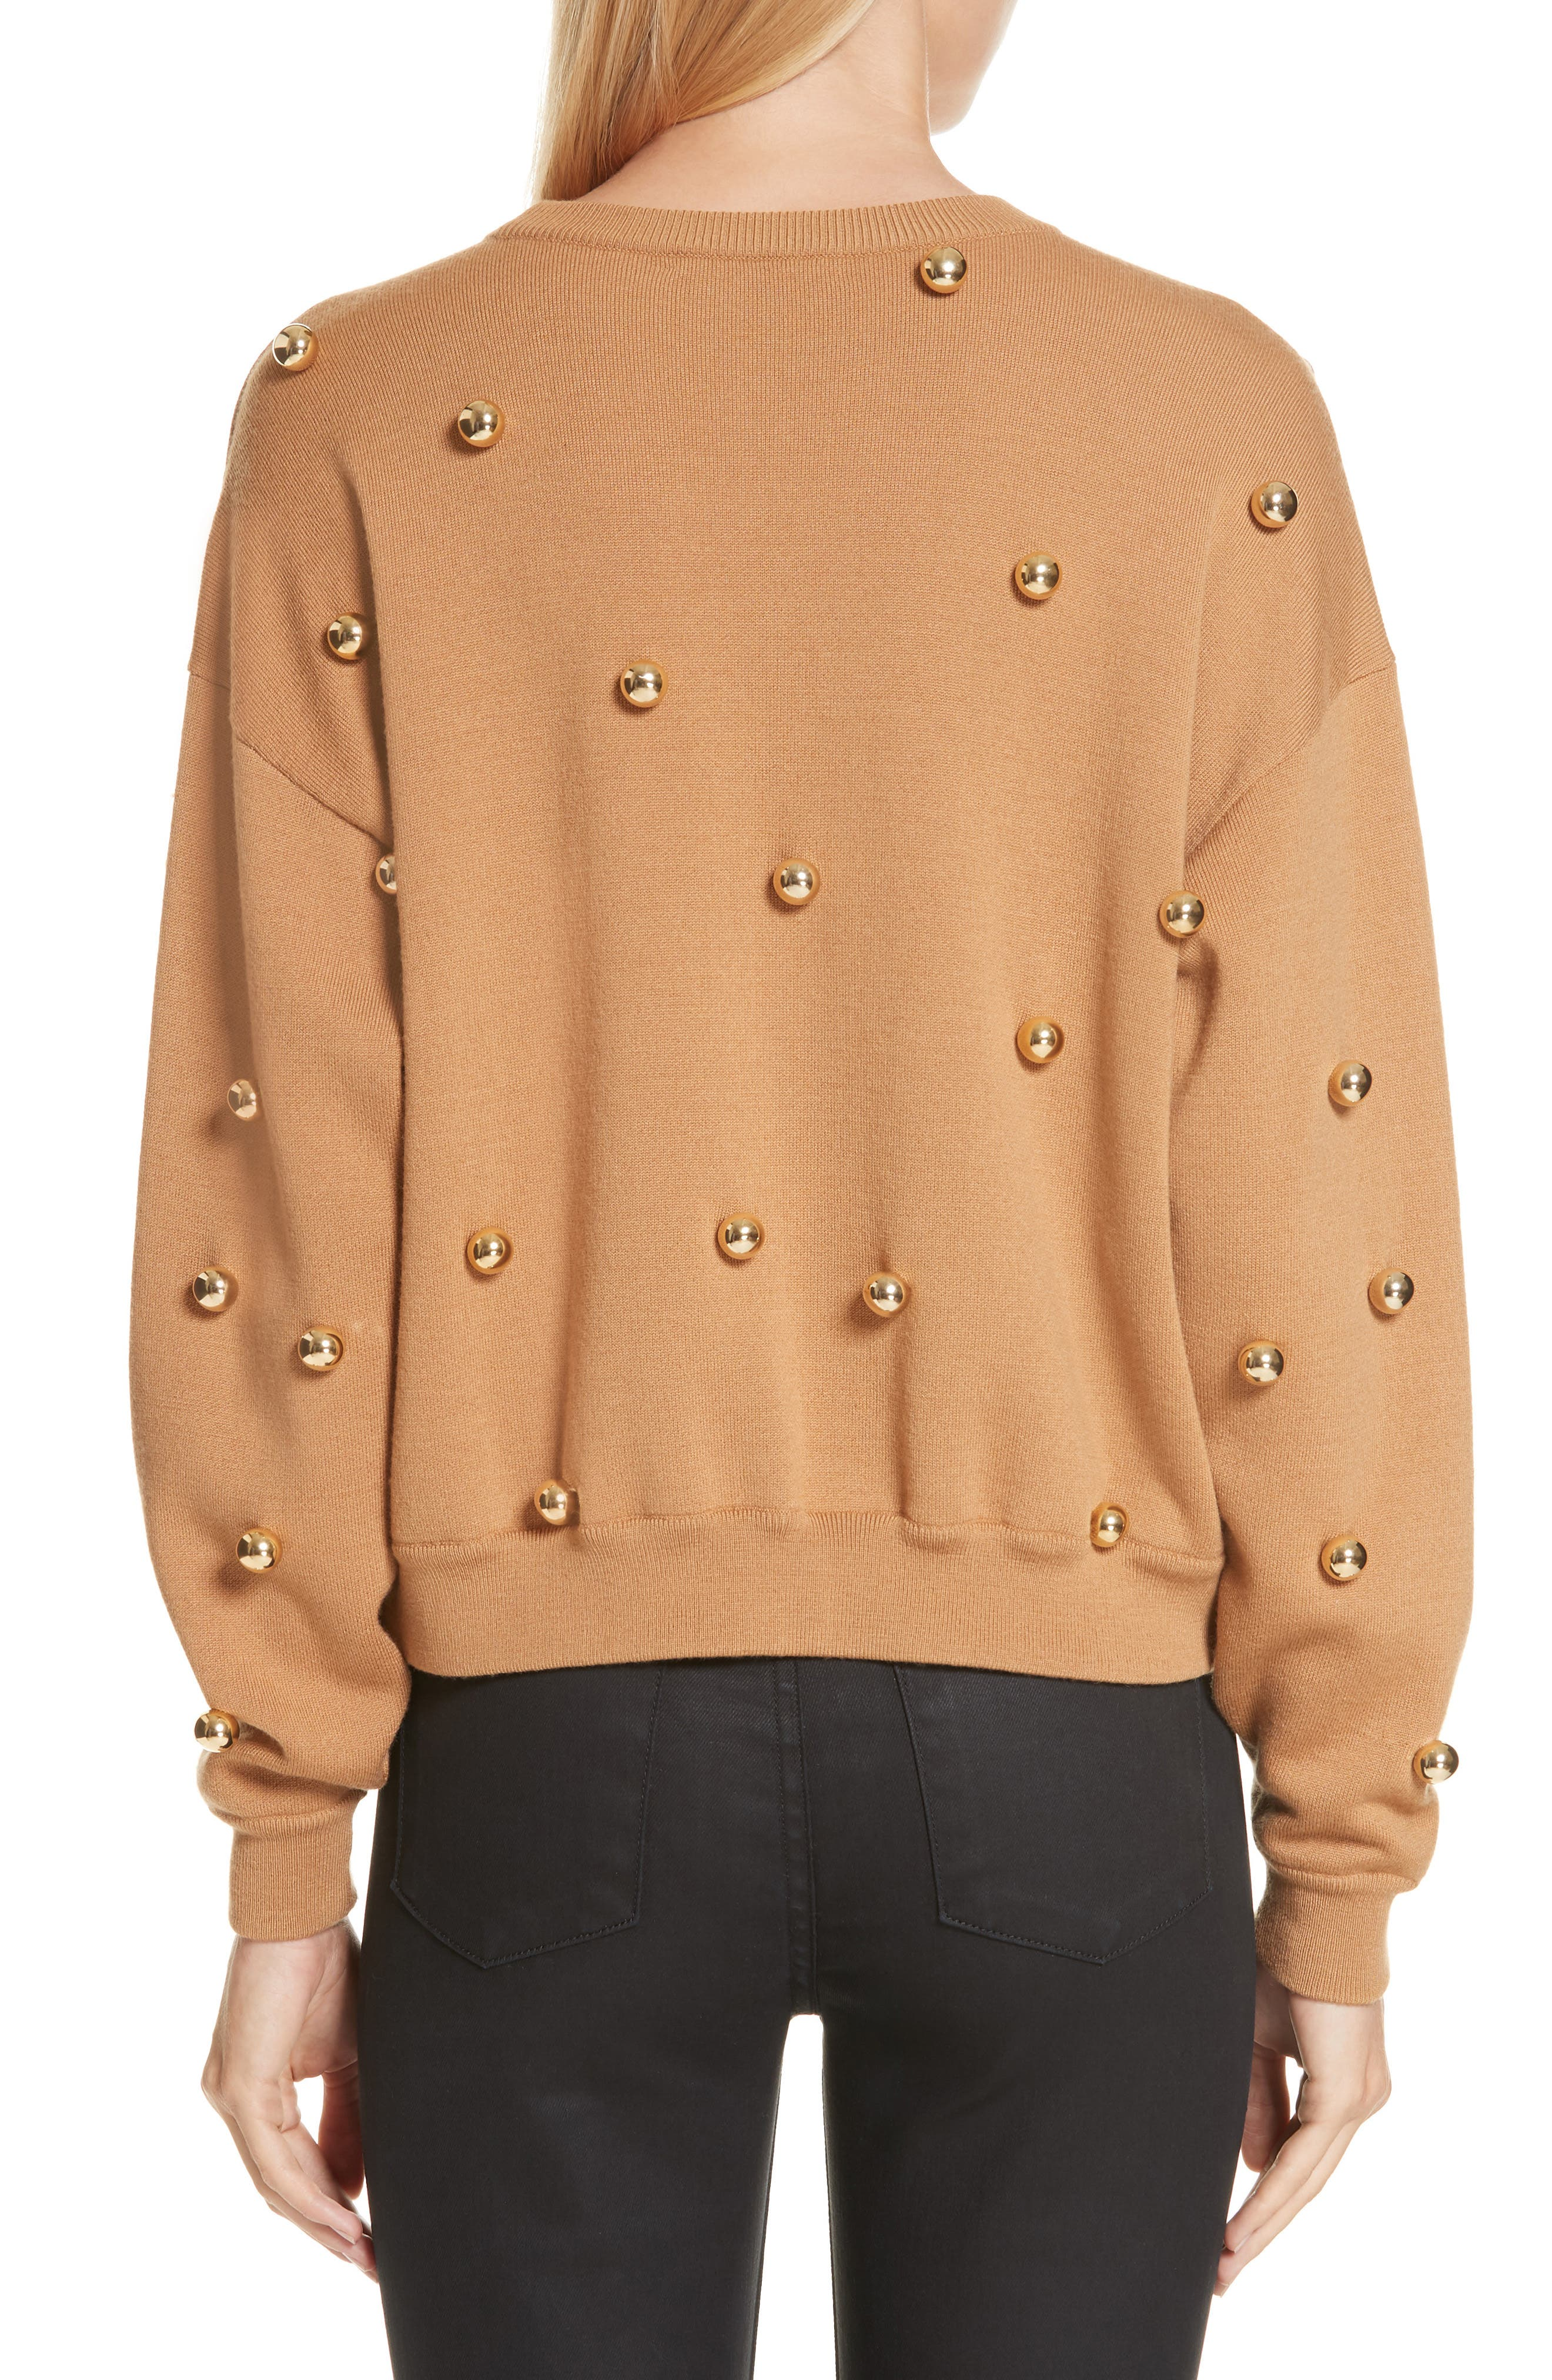 ALICE + OLIVIA, Gleeson Metal Ball Detail Wool Blend Sweater, Alternate thumbnail 2, color, 200